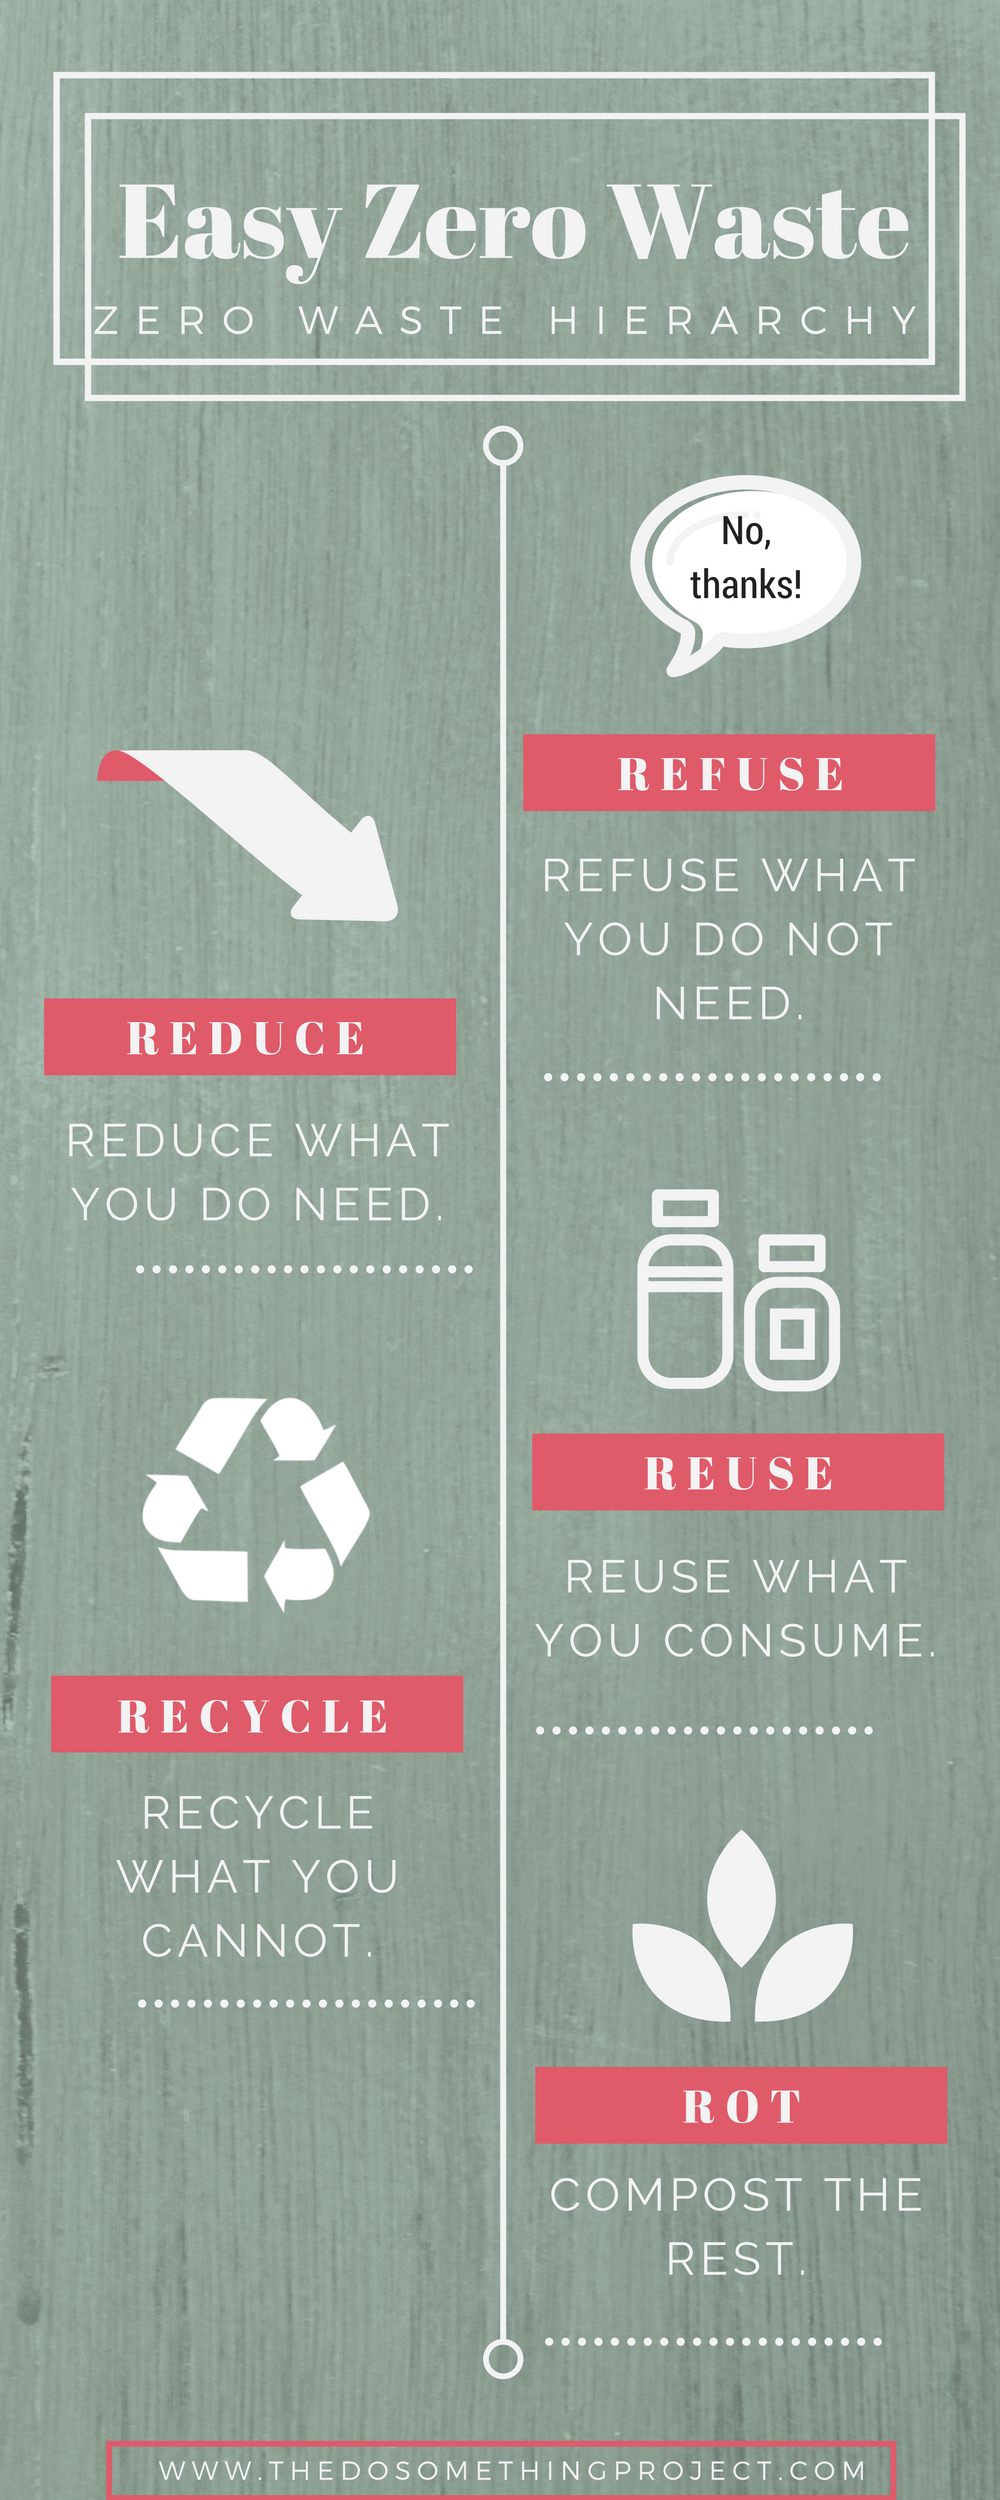 Zero Waste Graphics — The Do Something Project